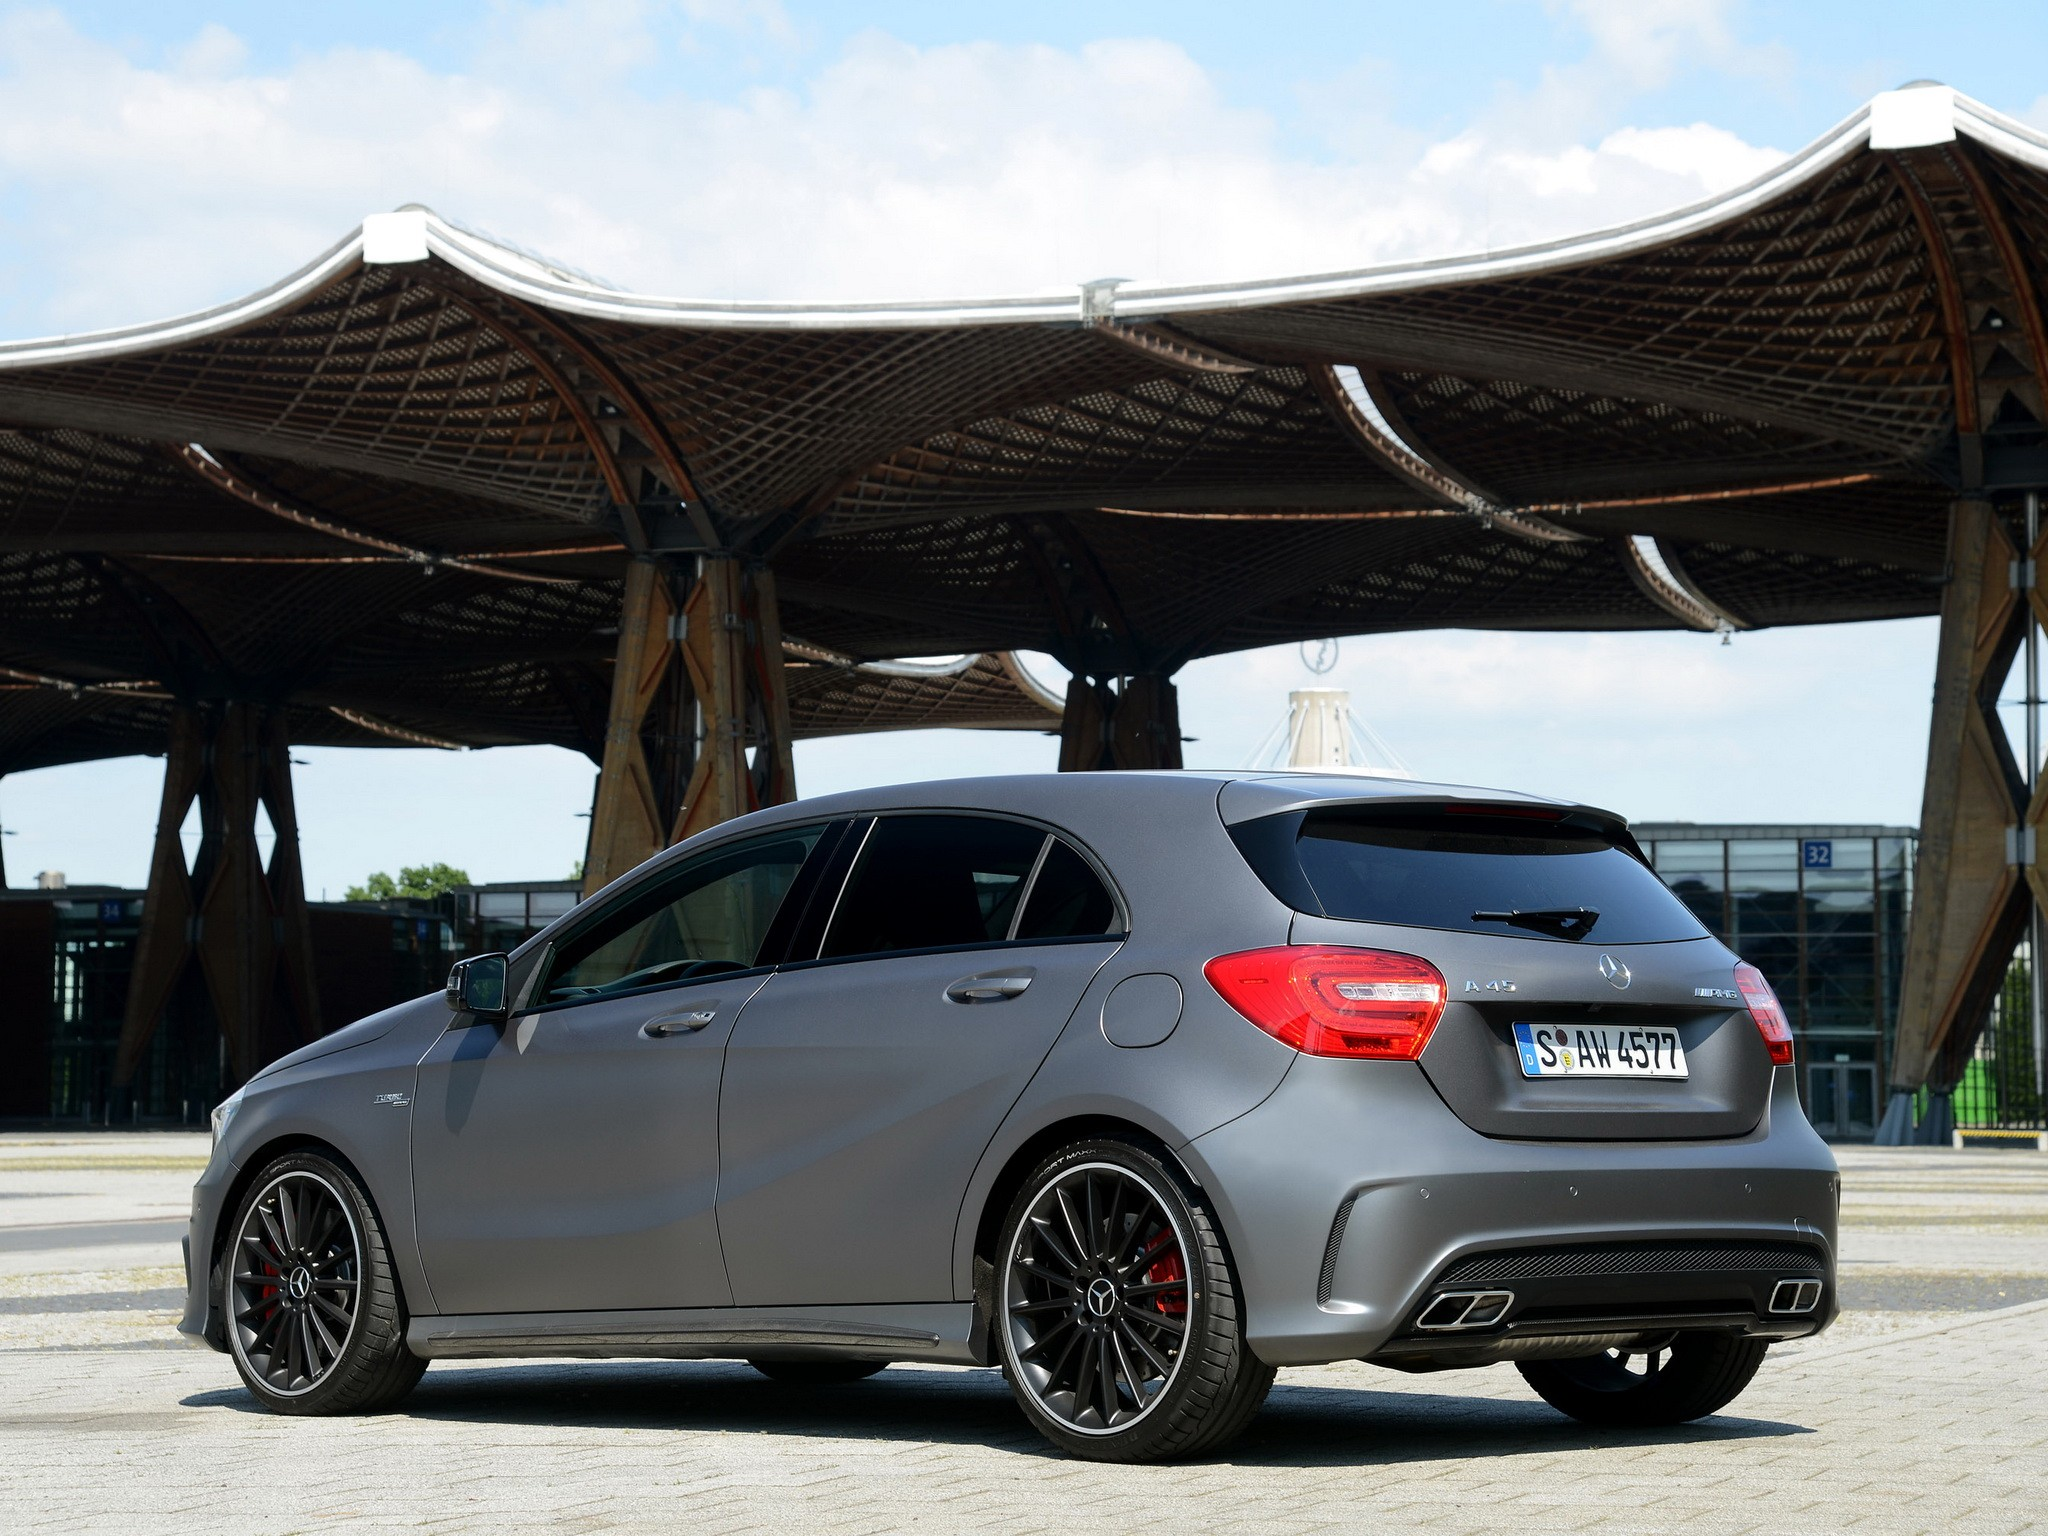 Mercedes benz a45 amg w176 specs 2013 2014 2015 for Mercedes benz a45 amg